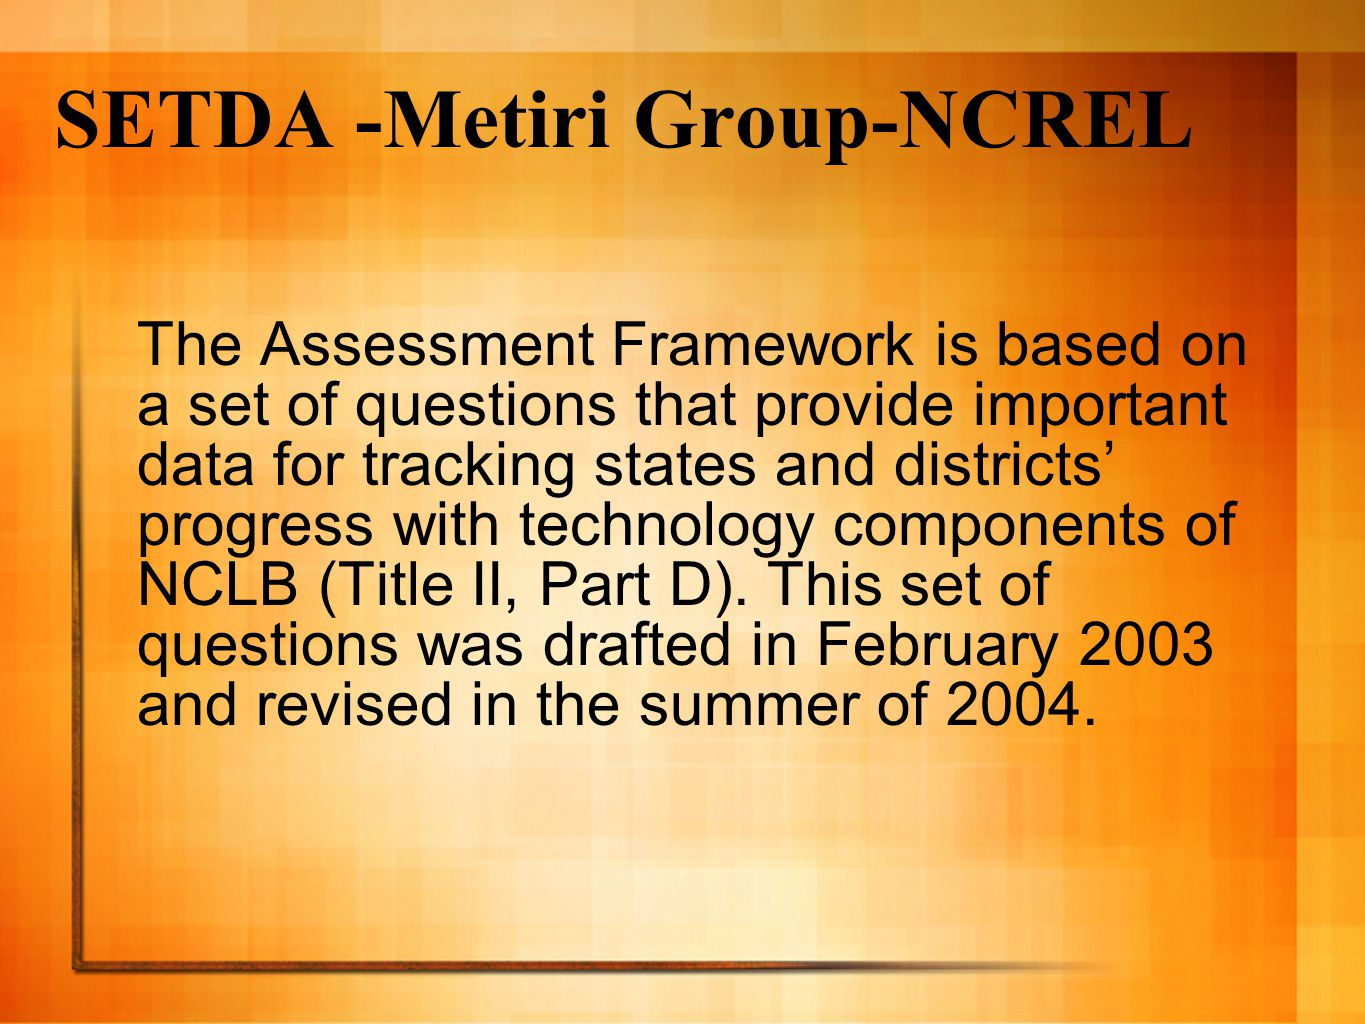 SETDA -Metiri Group-NCREL The Assessment Framework is based on a set of questions that provide important data for tracking states and districts' progr